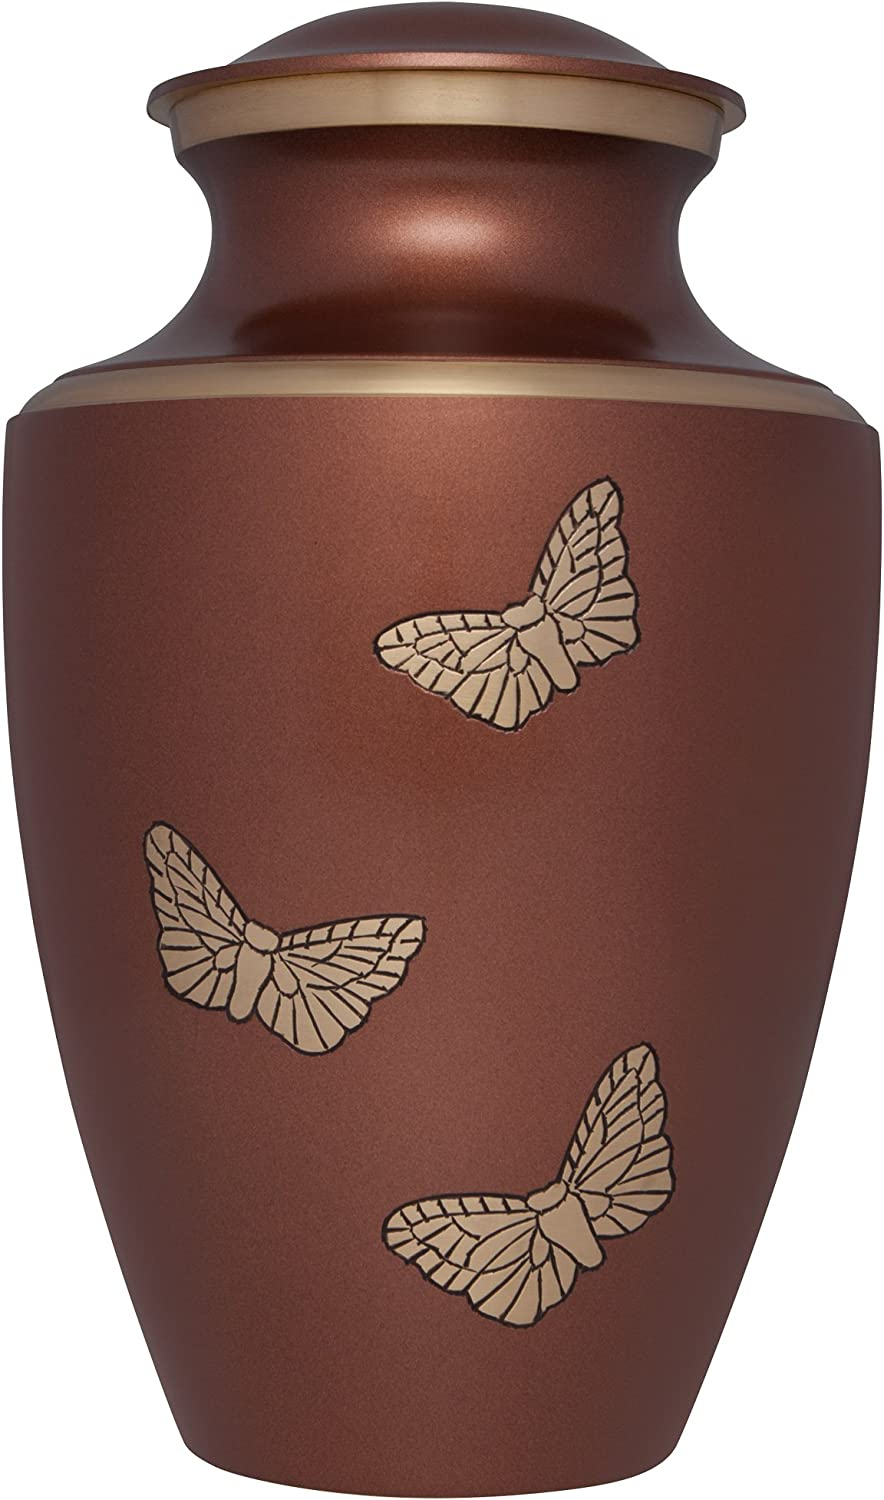 Liliane Memorials Brown Funeral Cremation Urn with gold Butterflies Paprika Model in Brass for Human Ashes; Suitable for Cemetery Burial; Fits Remains of Adults up to 200 lbs, Large 200 lb,